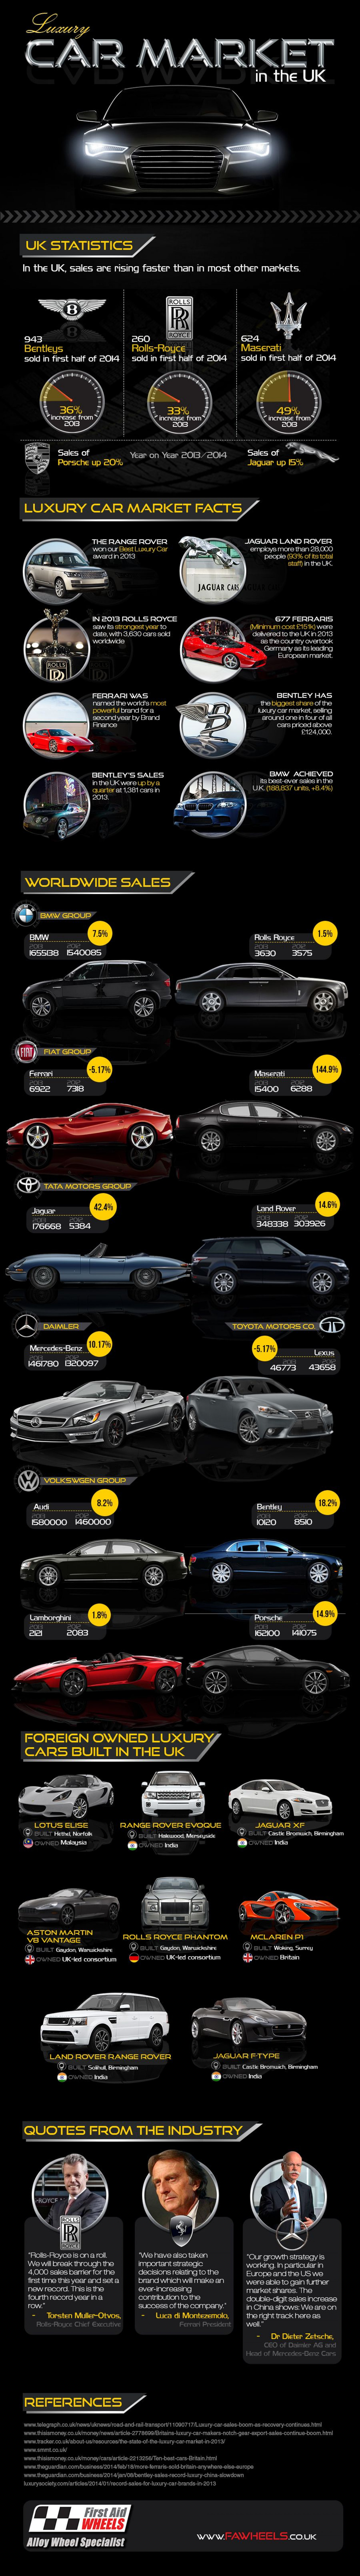 Luxury Car Market Growth in the UK       Infographic